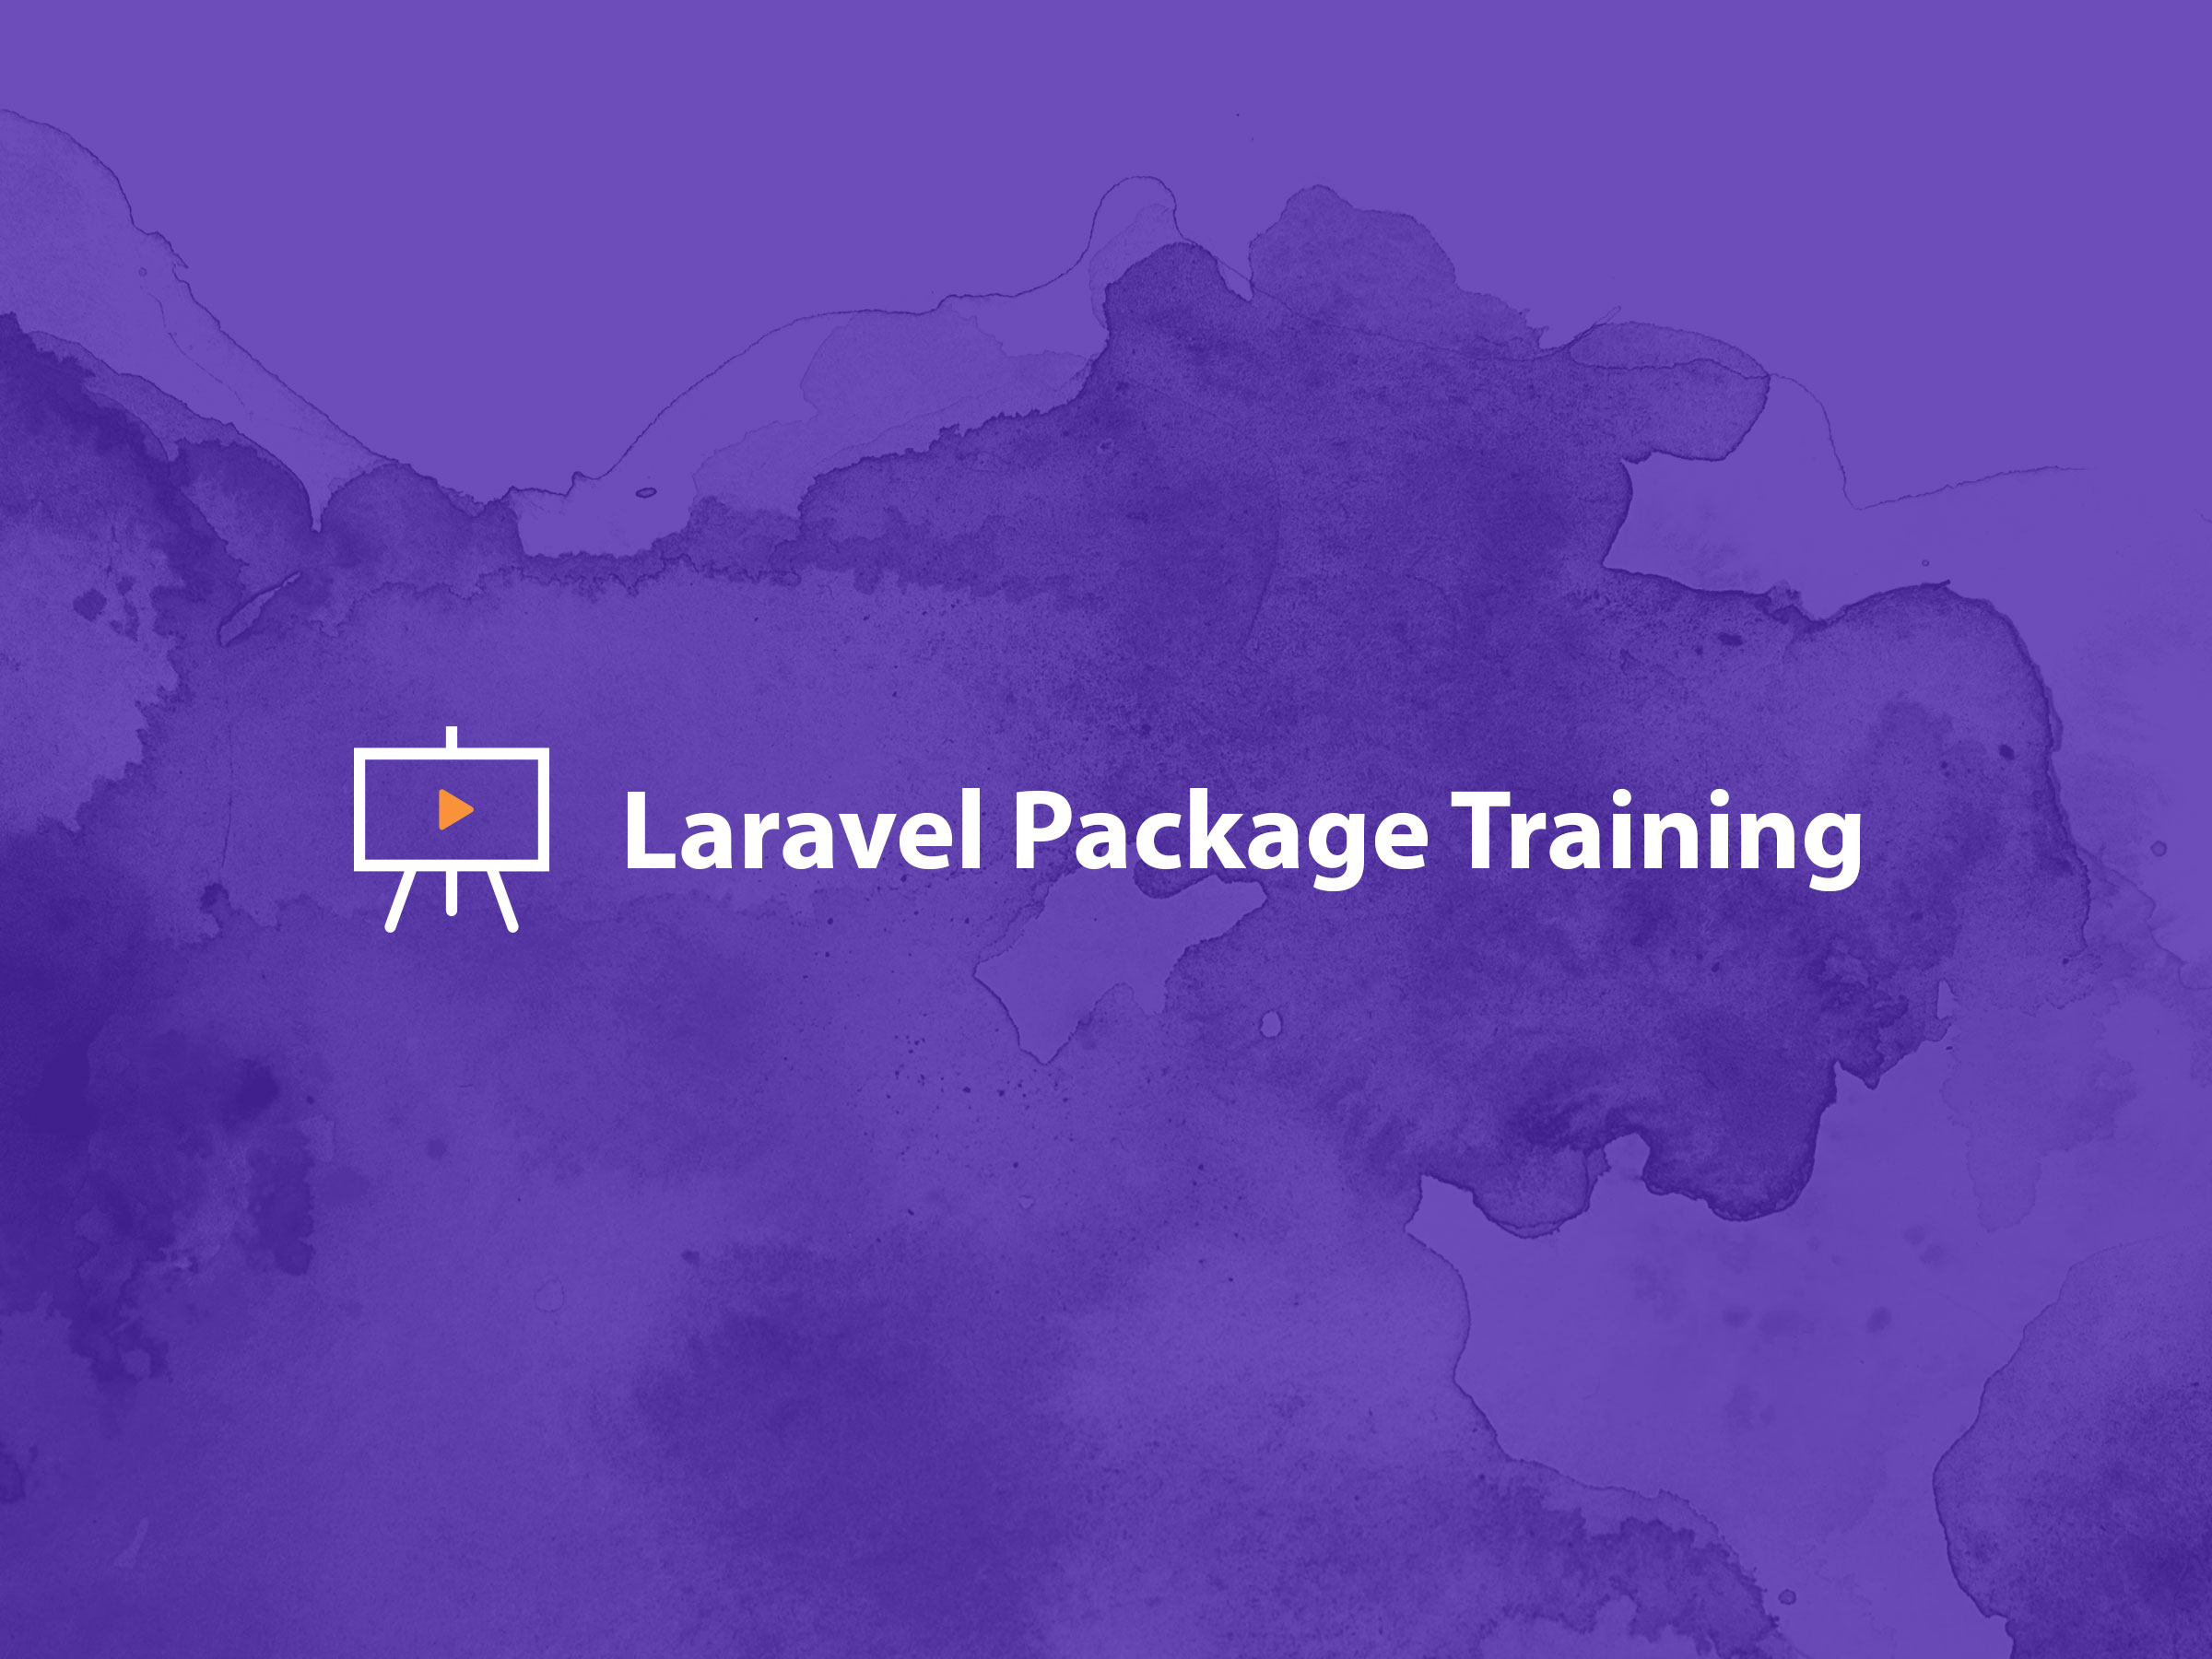 laravel-package-training